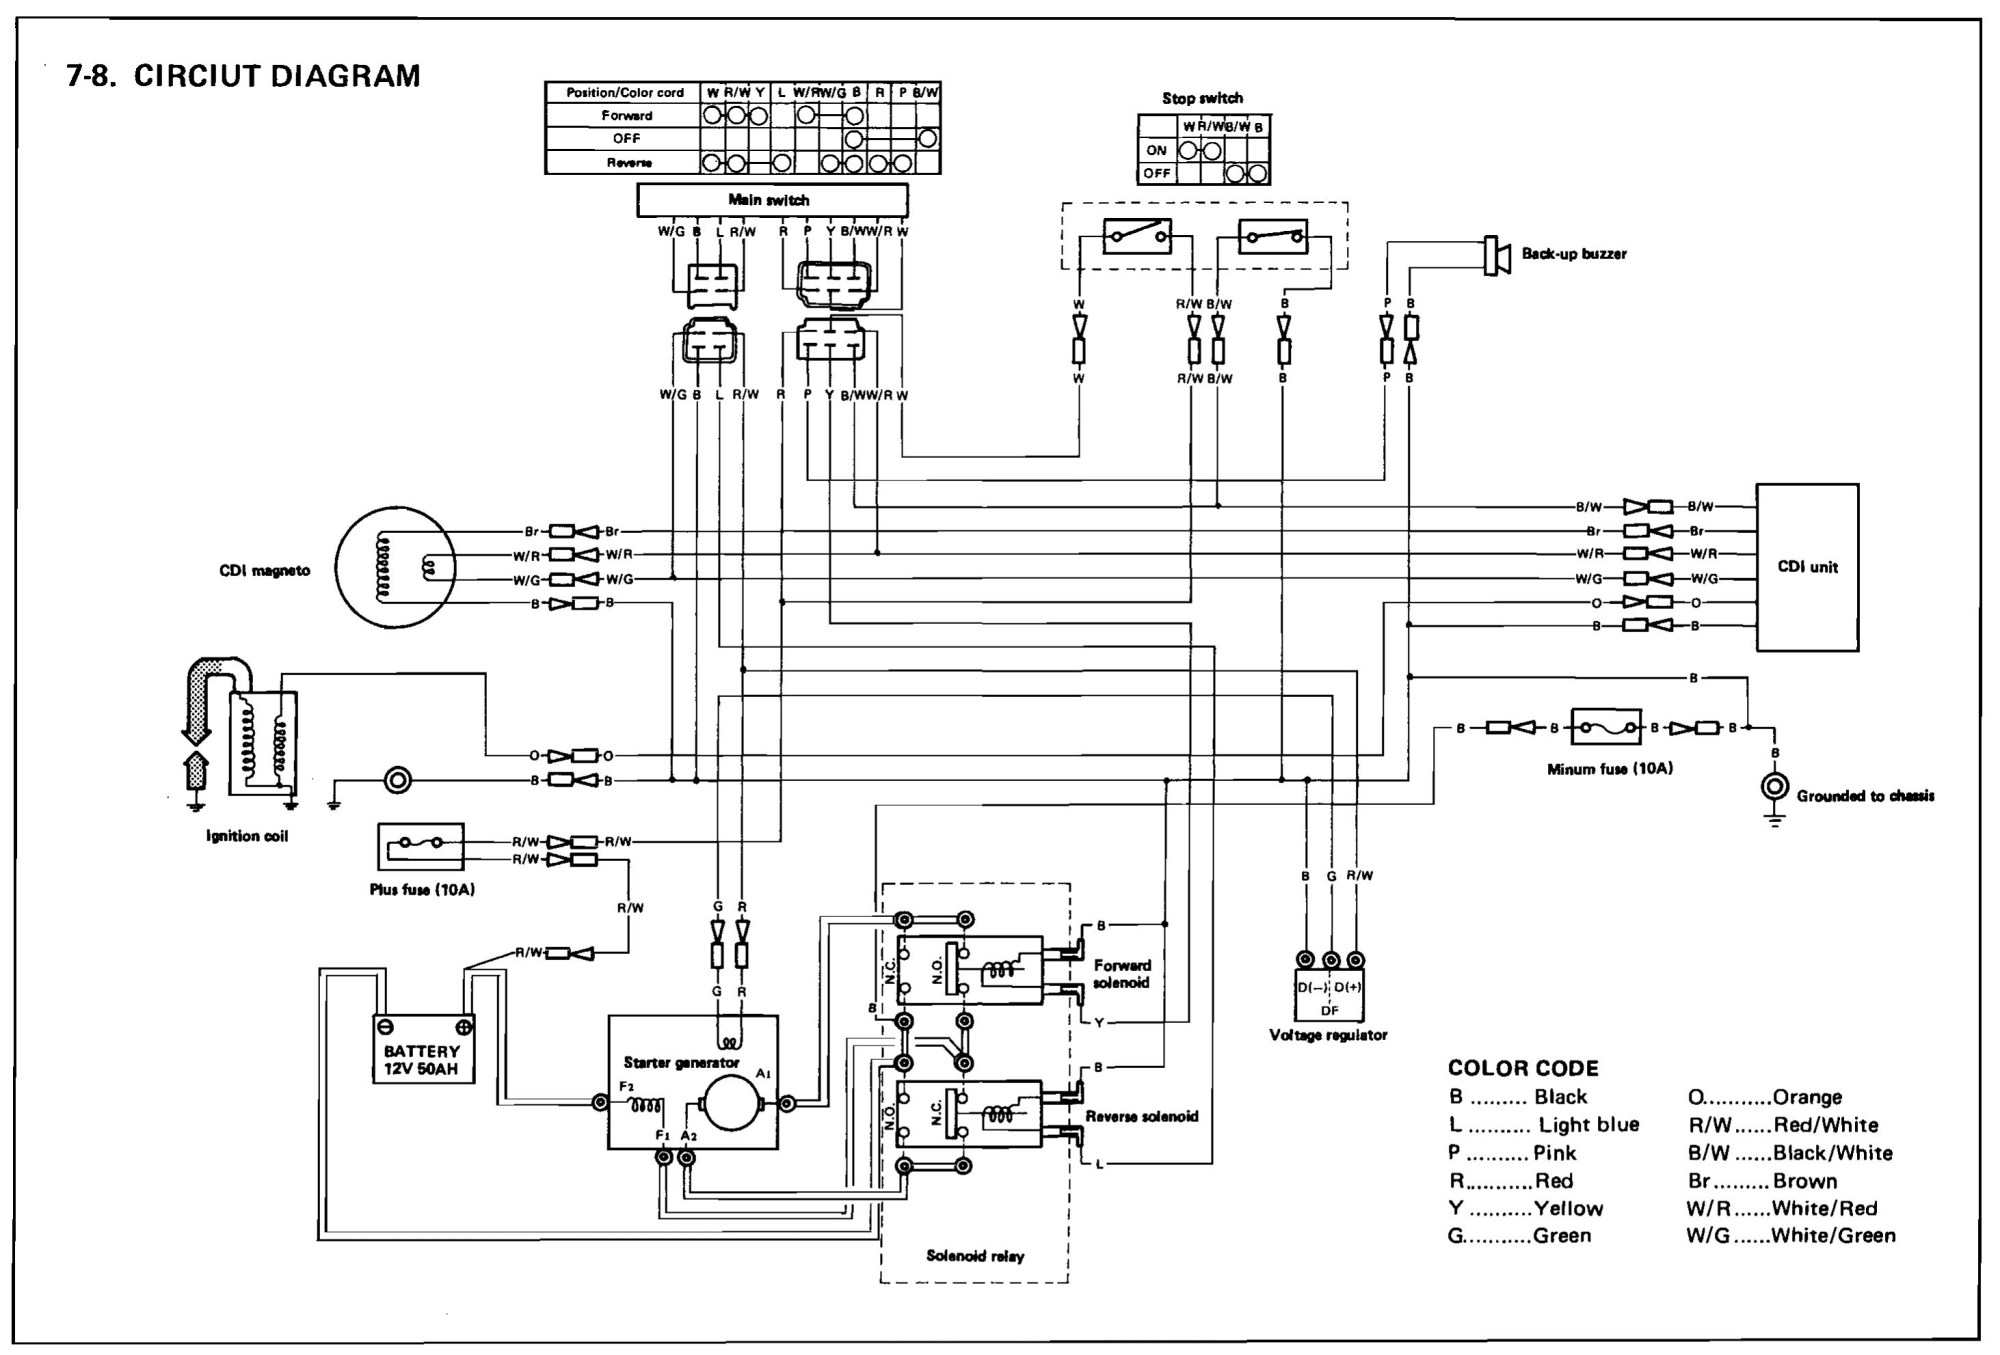 hight resolution of yamaha golf cart battery wiring diagram wiring diagrams for yamaha golf carts new golf cart